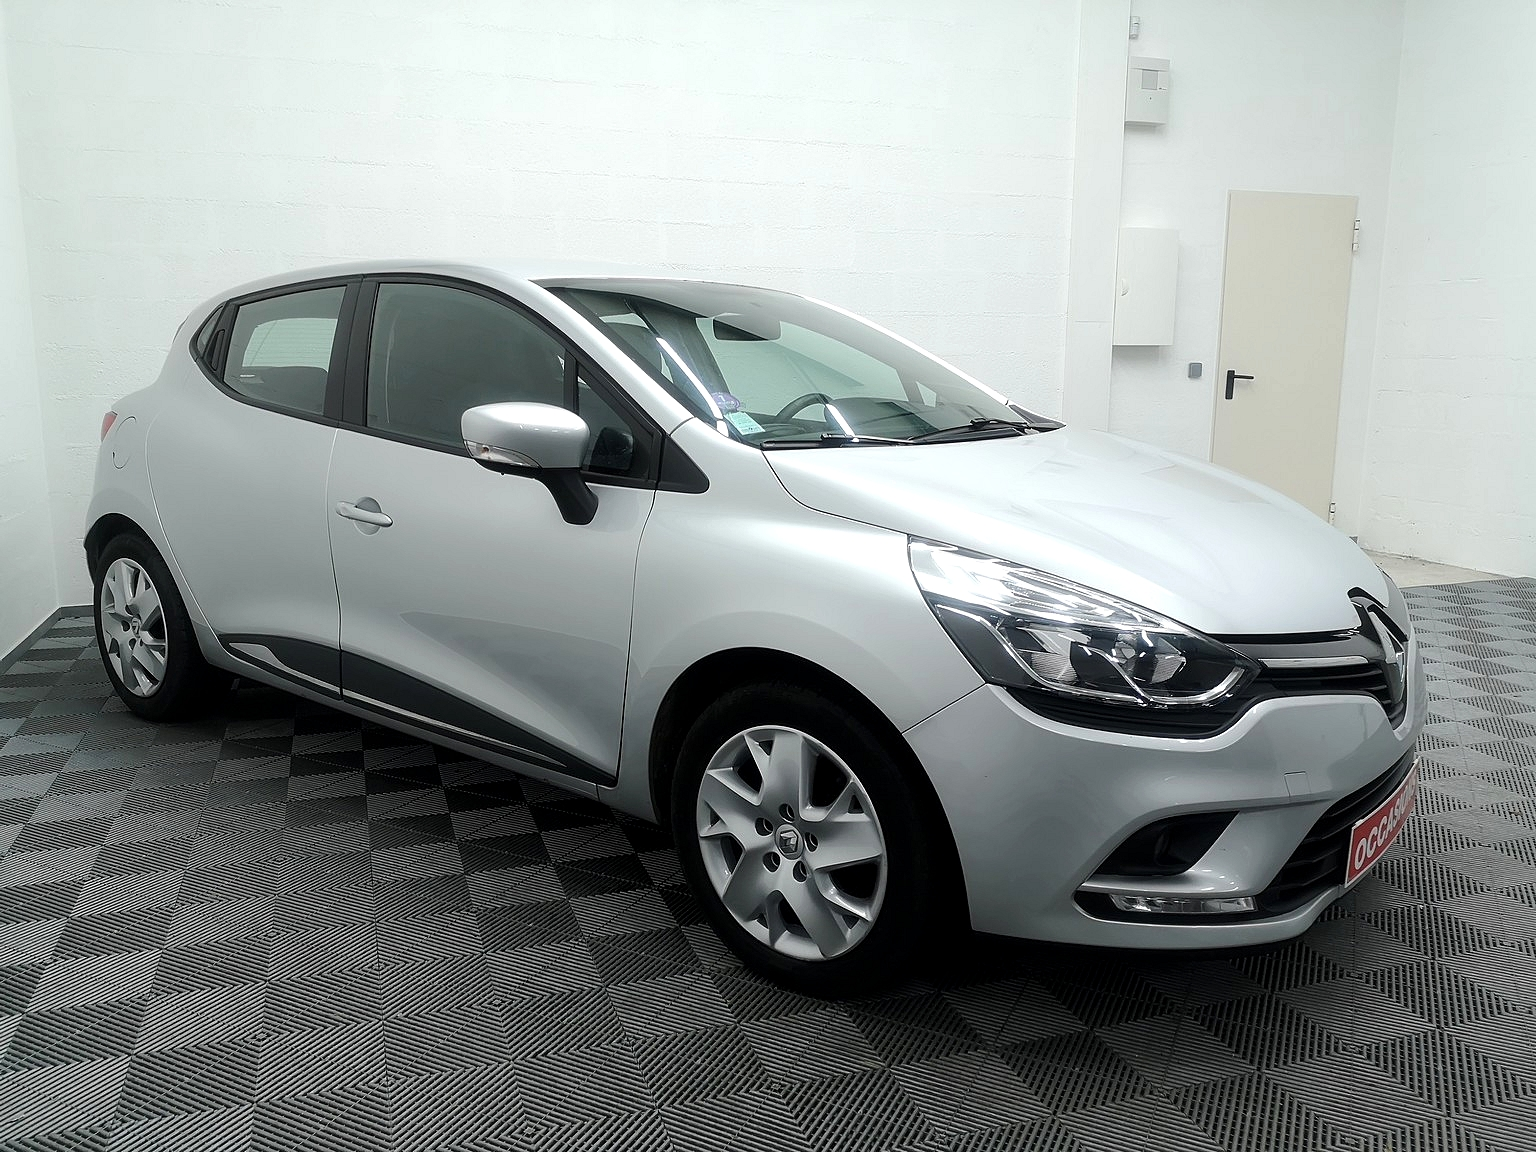 RENAULT CLIO IV BUSINESS 2017 à 9500 € - Photo n°2